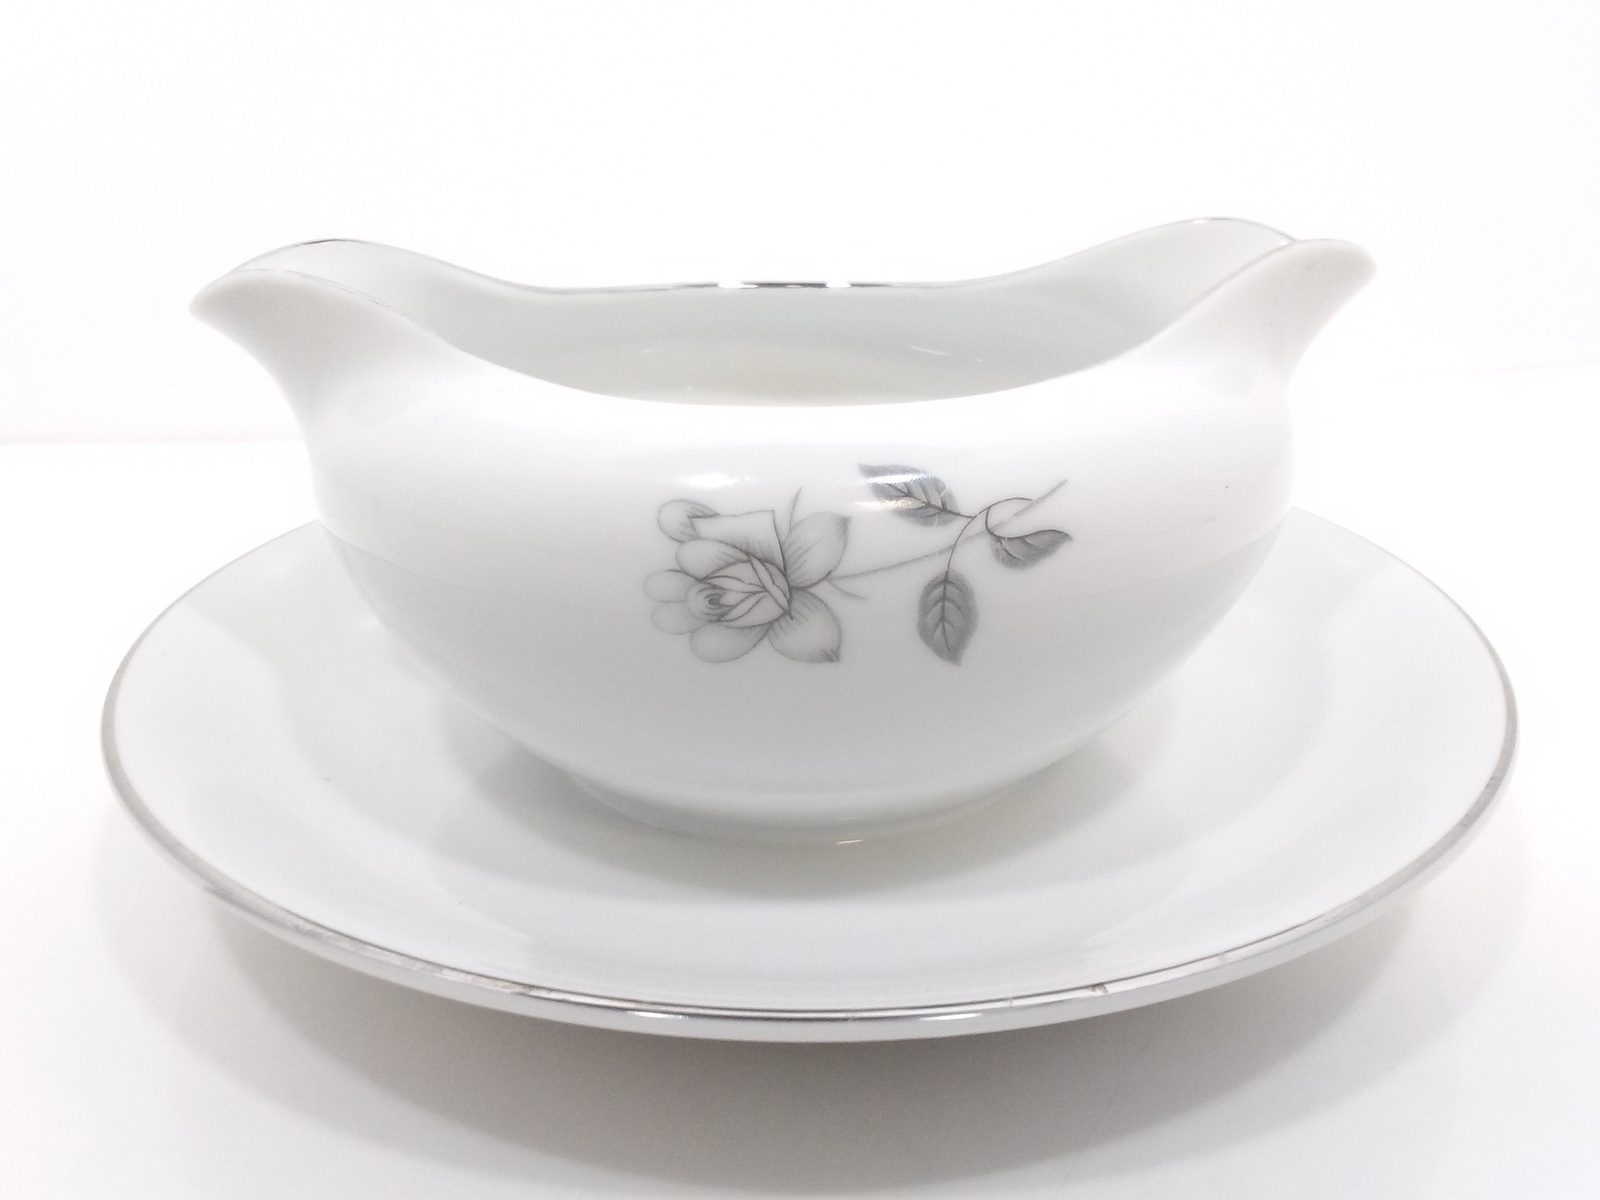 Queens Royal Gravy Boat With Attached Underplate Gray Rose & Bud Japan